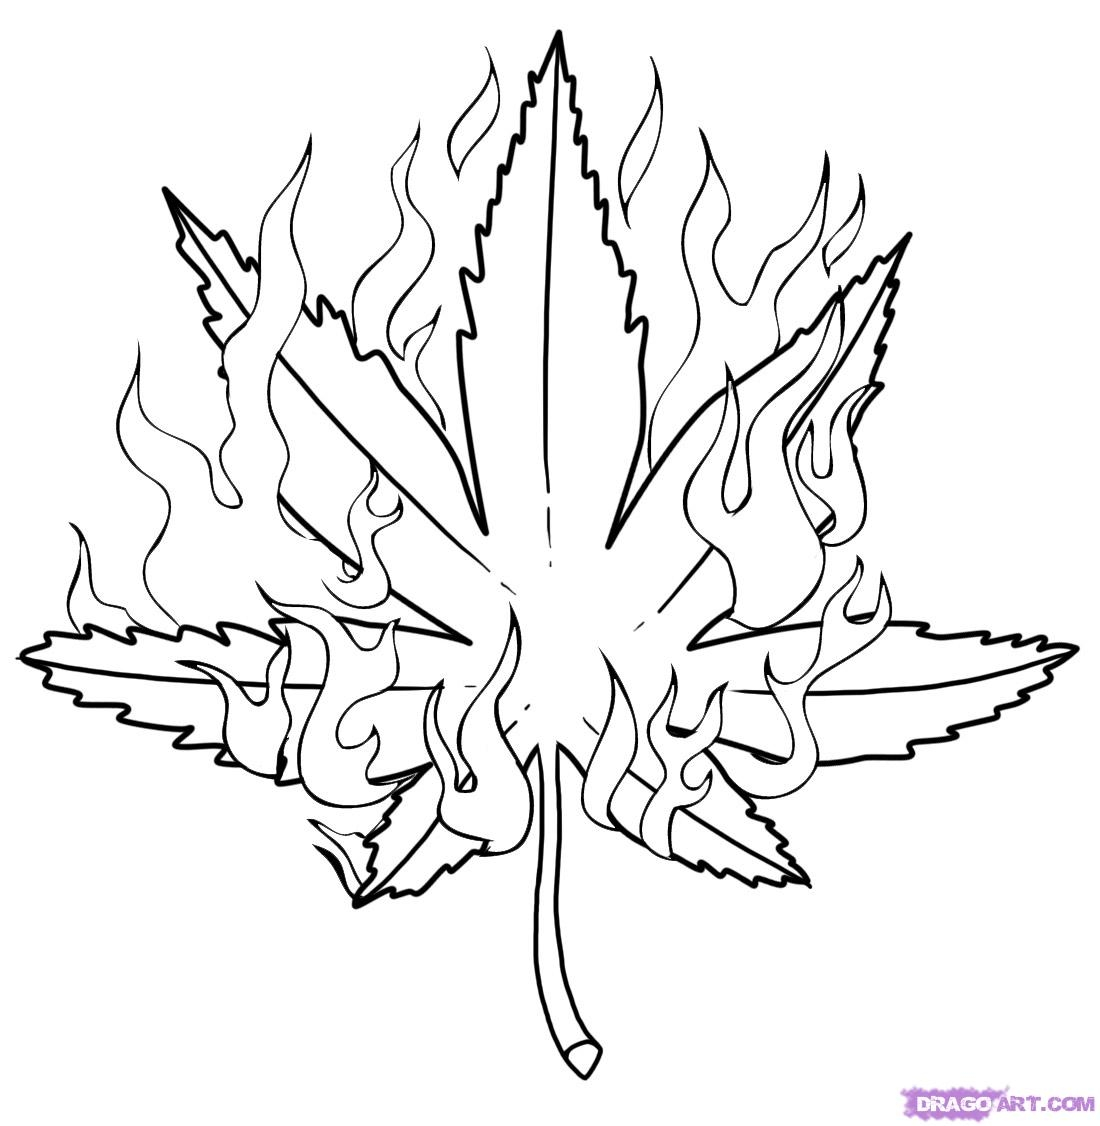 printable bird coloring pages - pot leaf coloring page